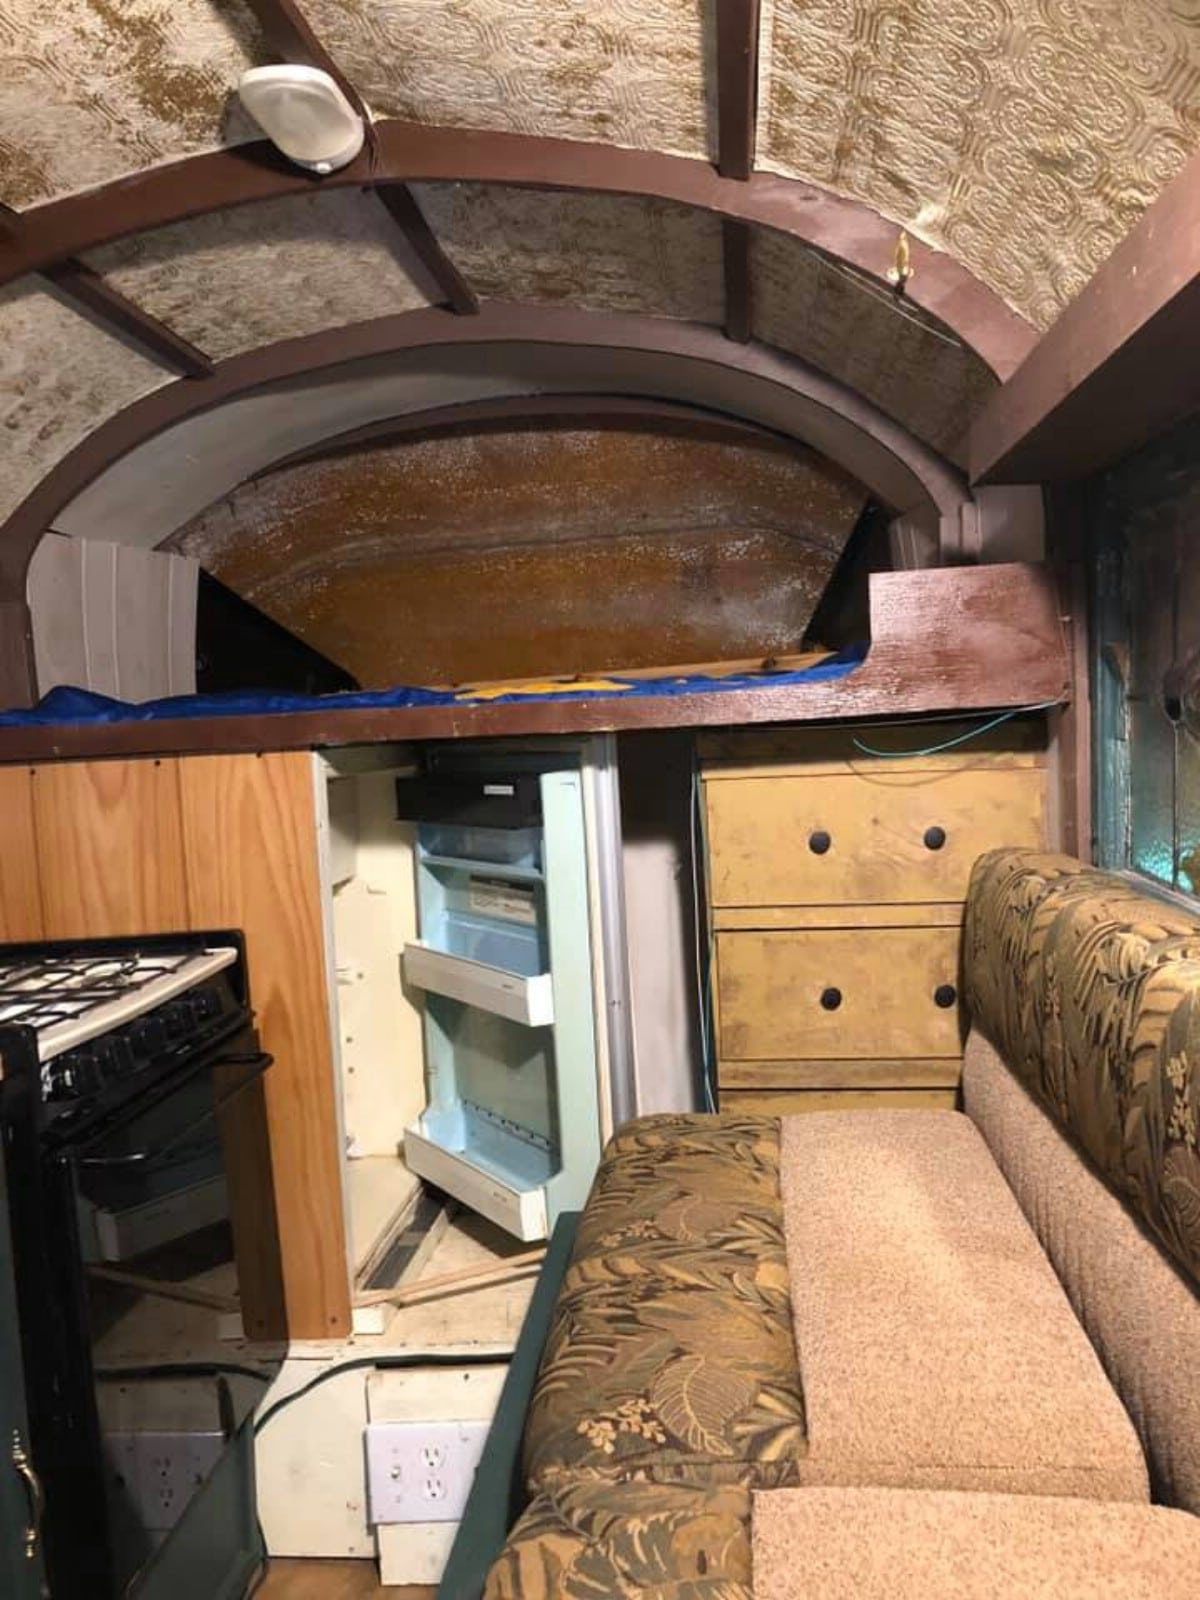 Couch and loft in truck camper